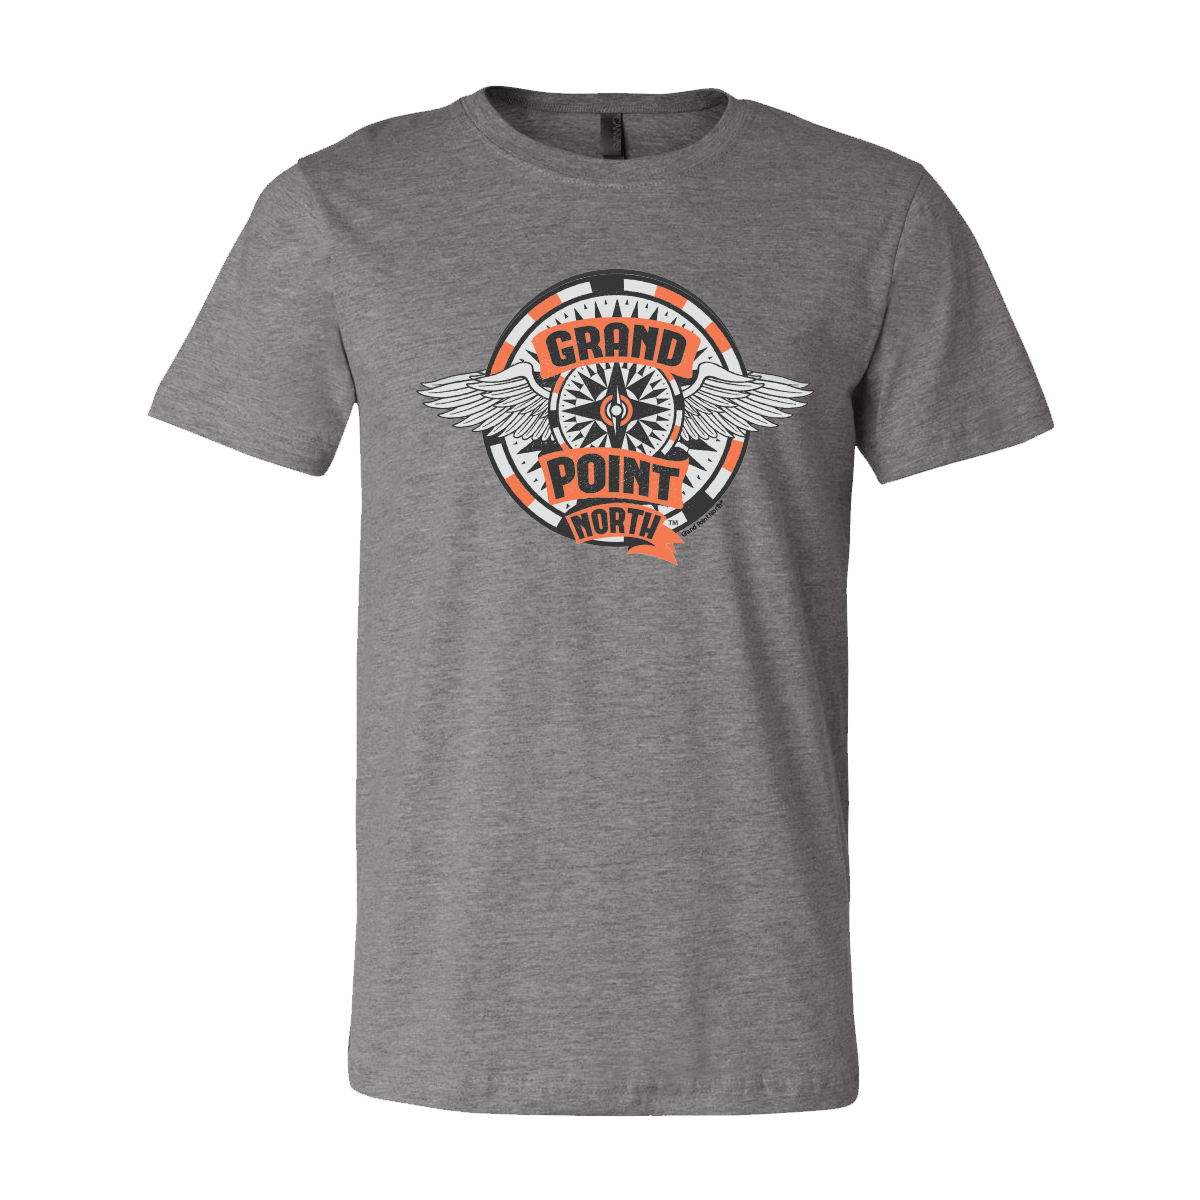 Grand Point North ® Tee 2021